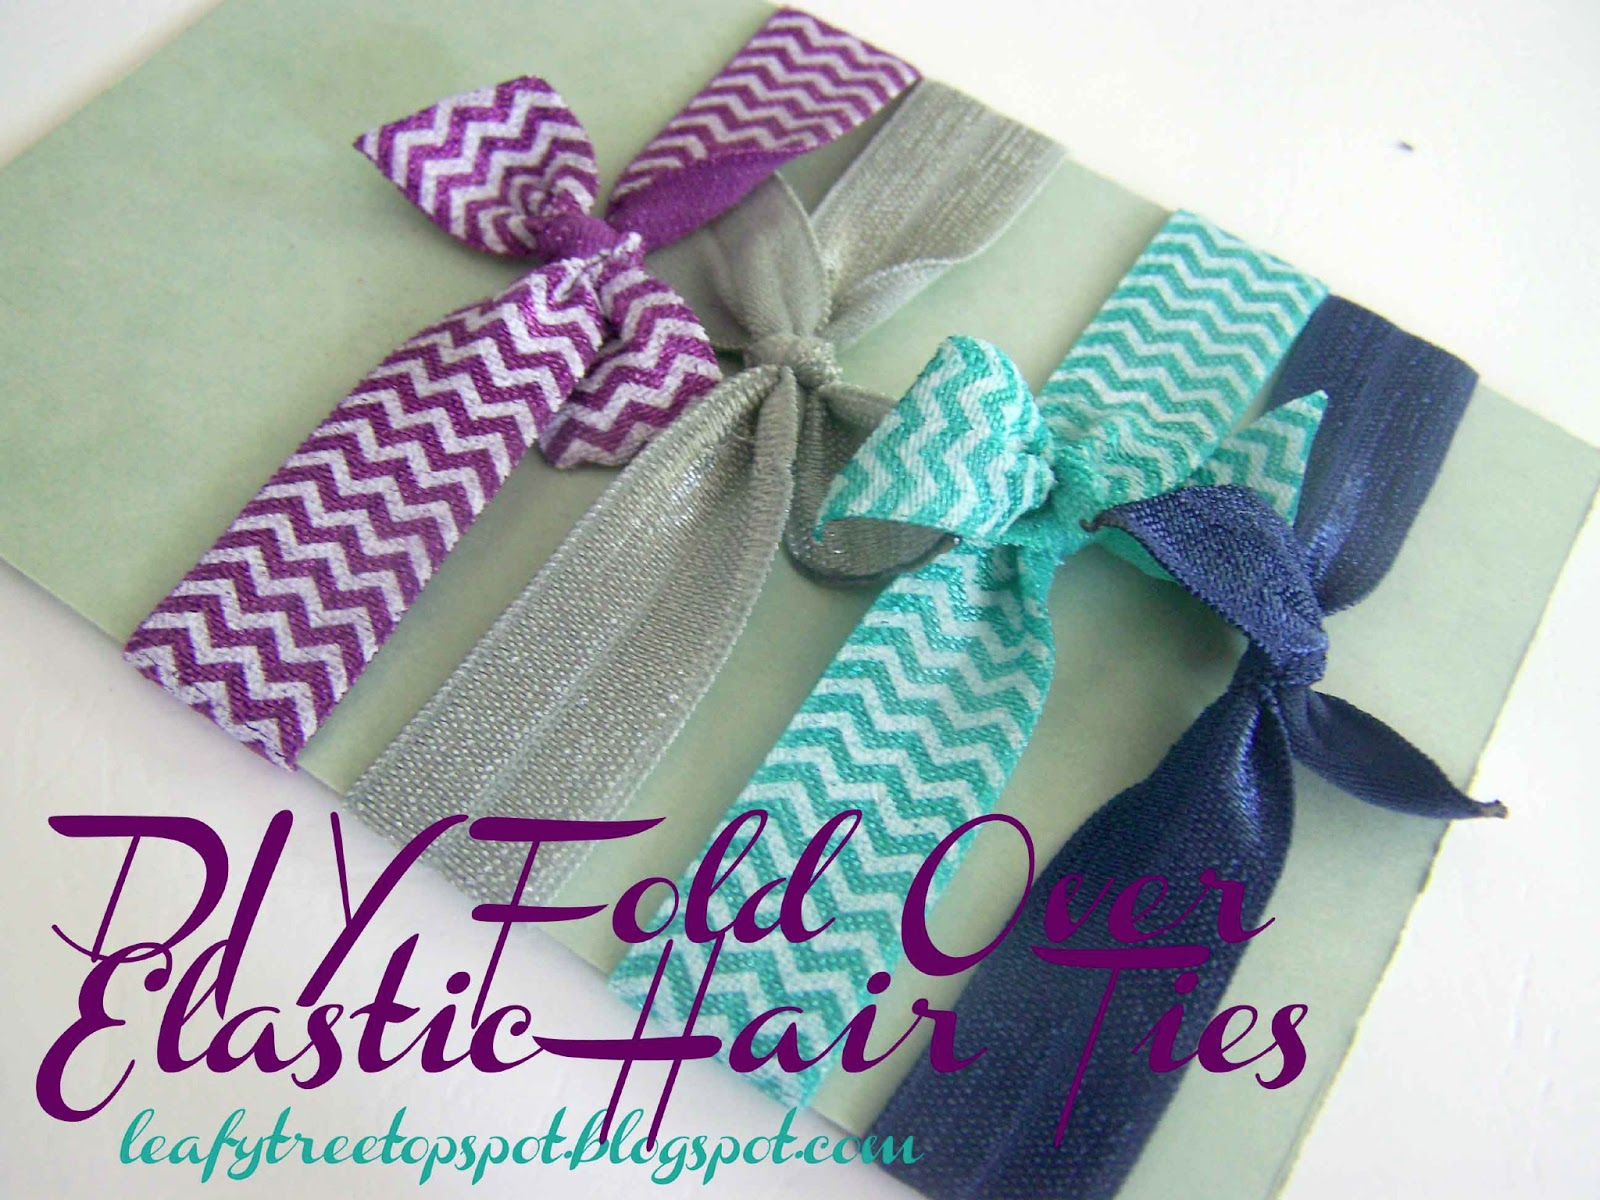 Made by Me. Shared with you.: Tutorial: DIY Fold Over ...